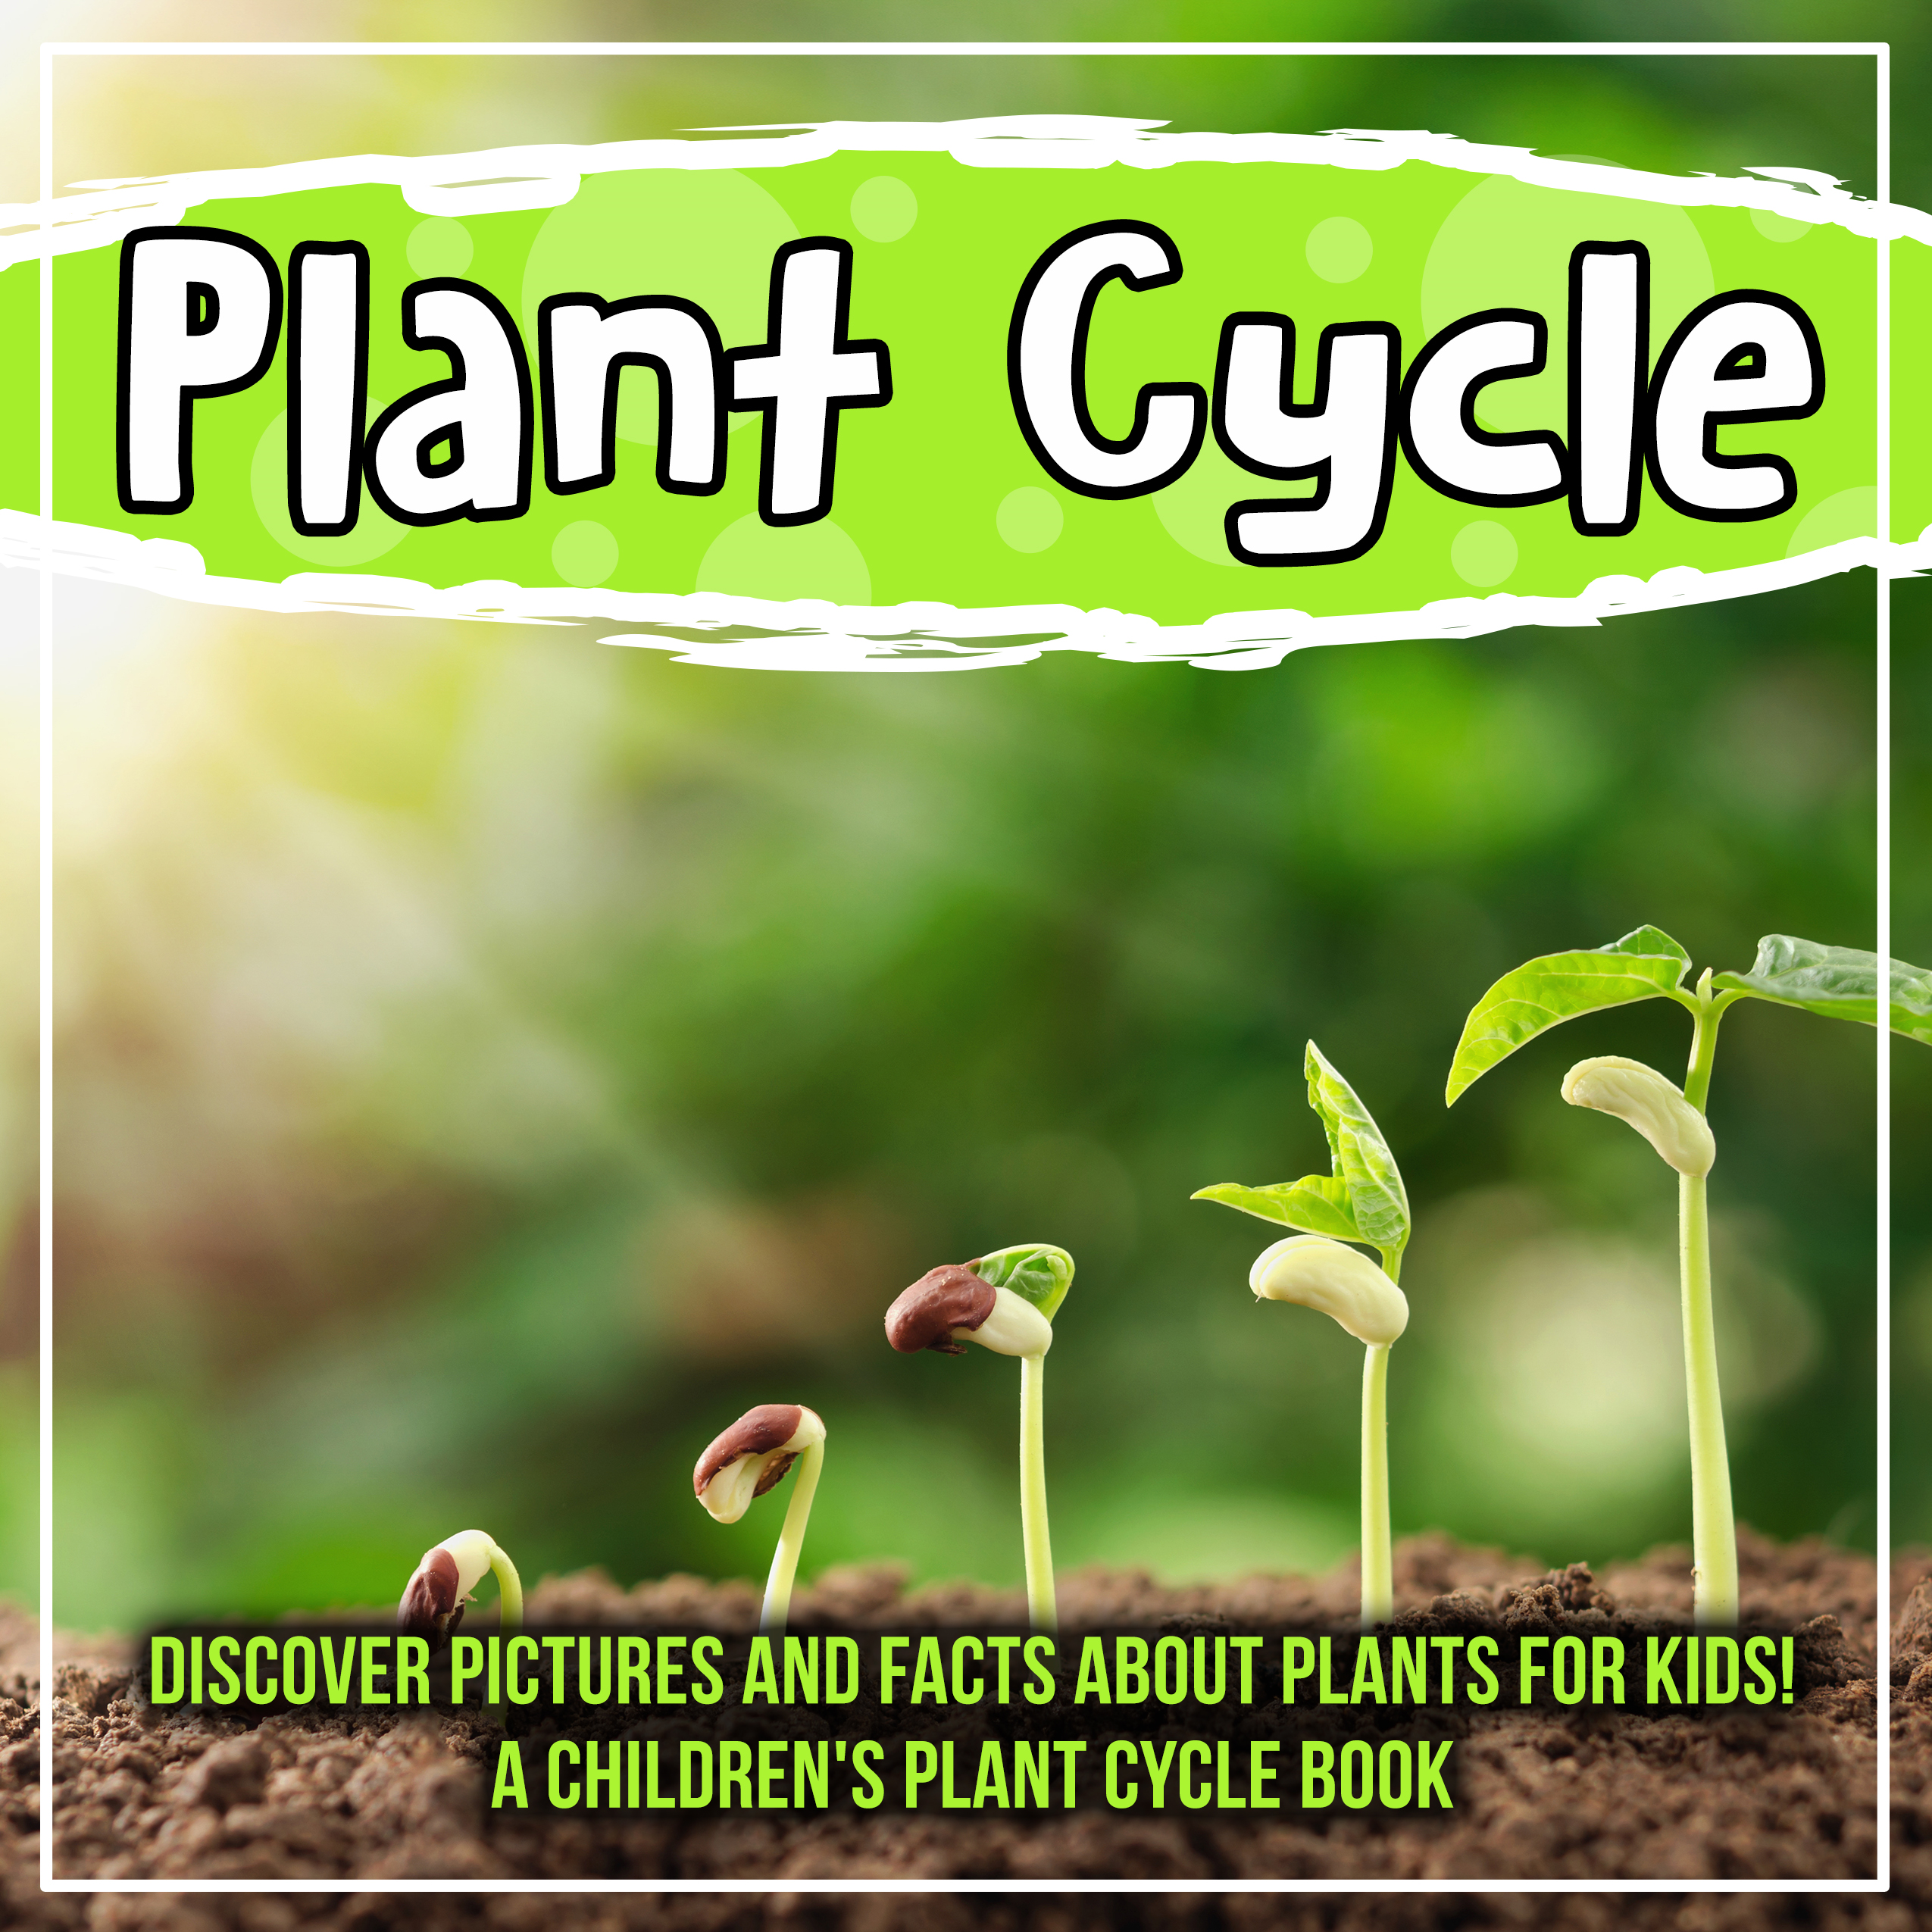 Plant Cycle: Discover Pictures and Facts About Plants For Kids! A Children's Plant Cycle Book